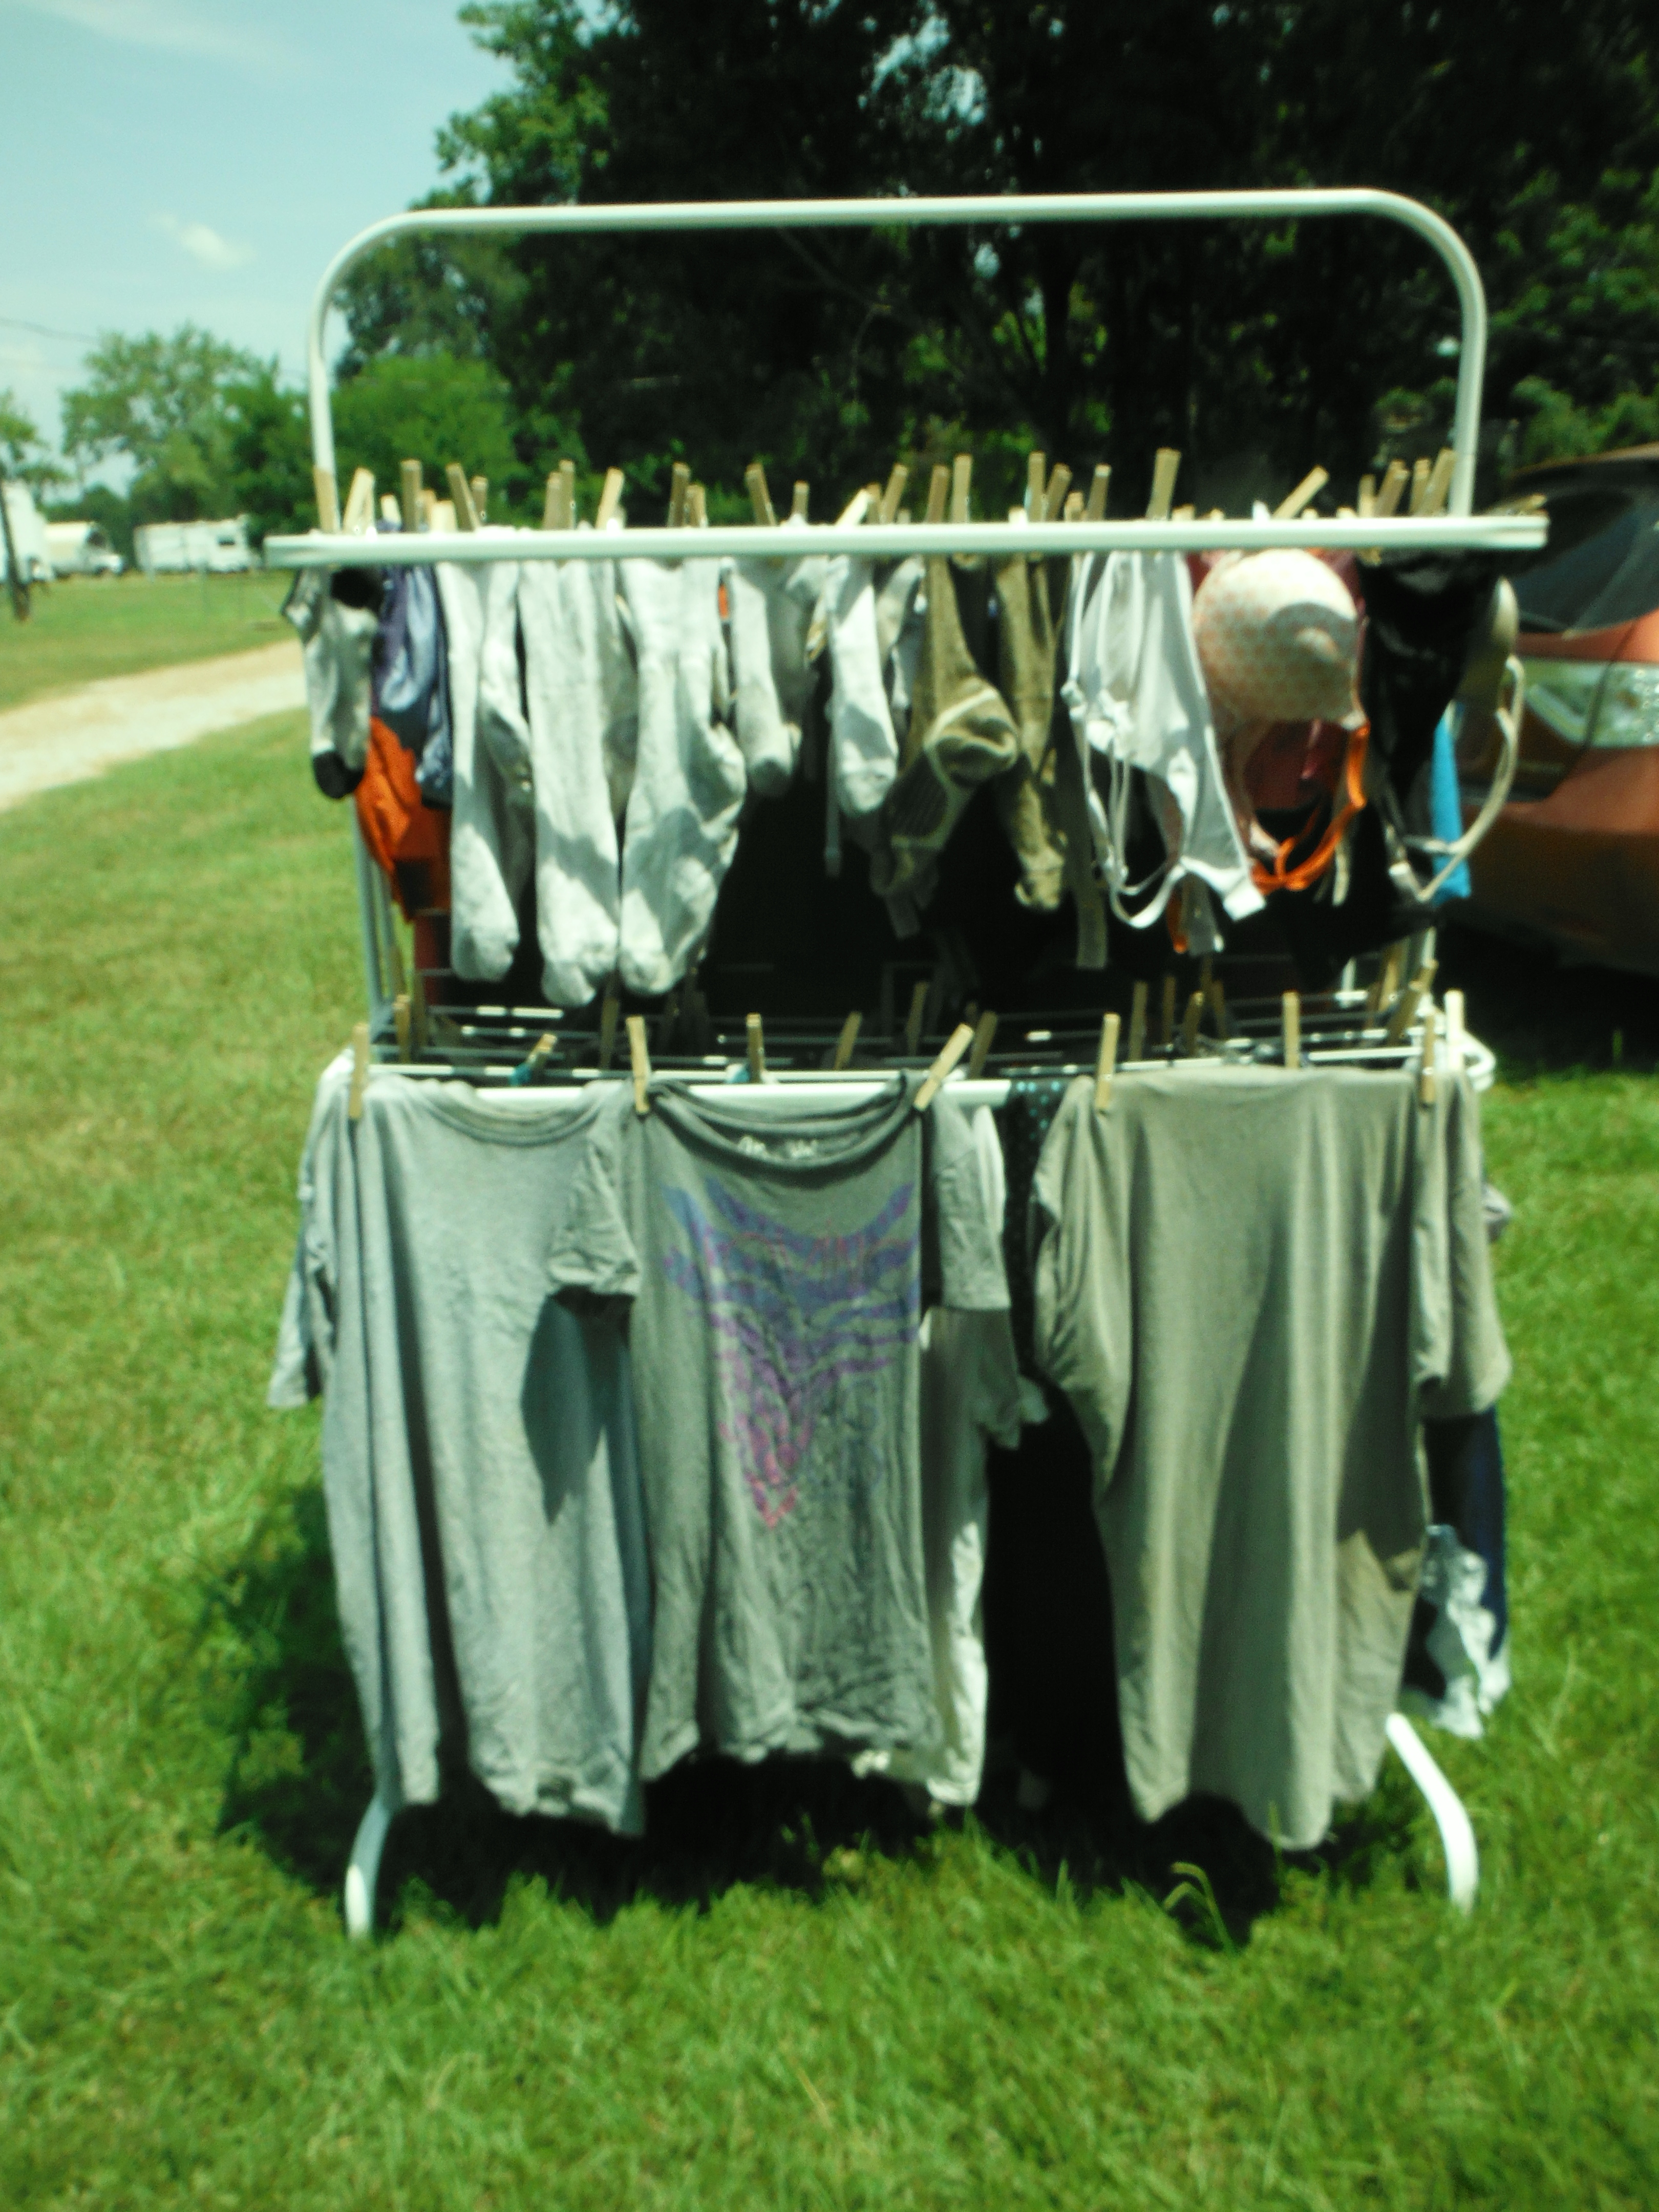 ... Hanging Clothes On A Clothes Line